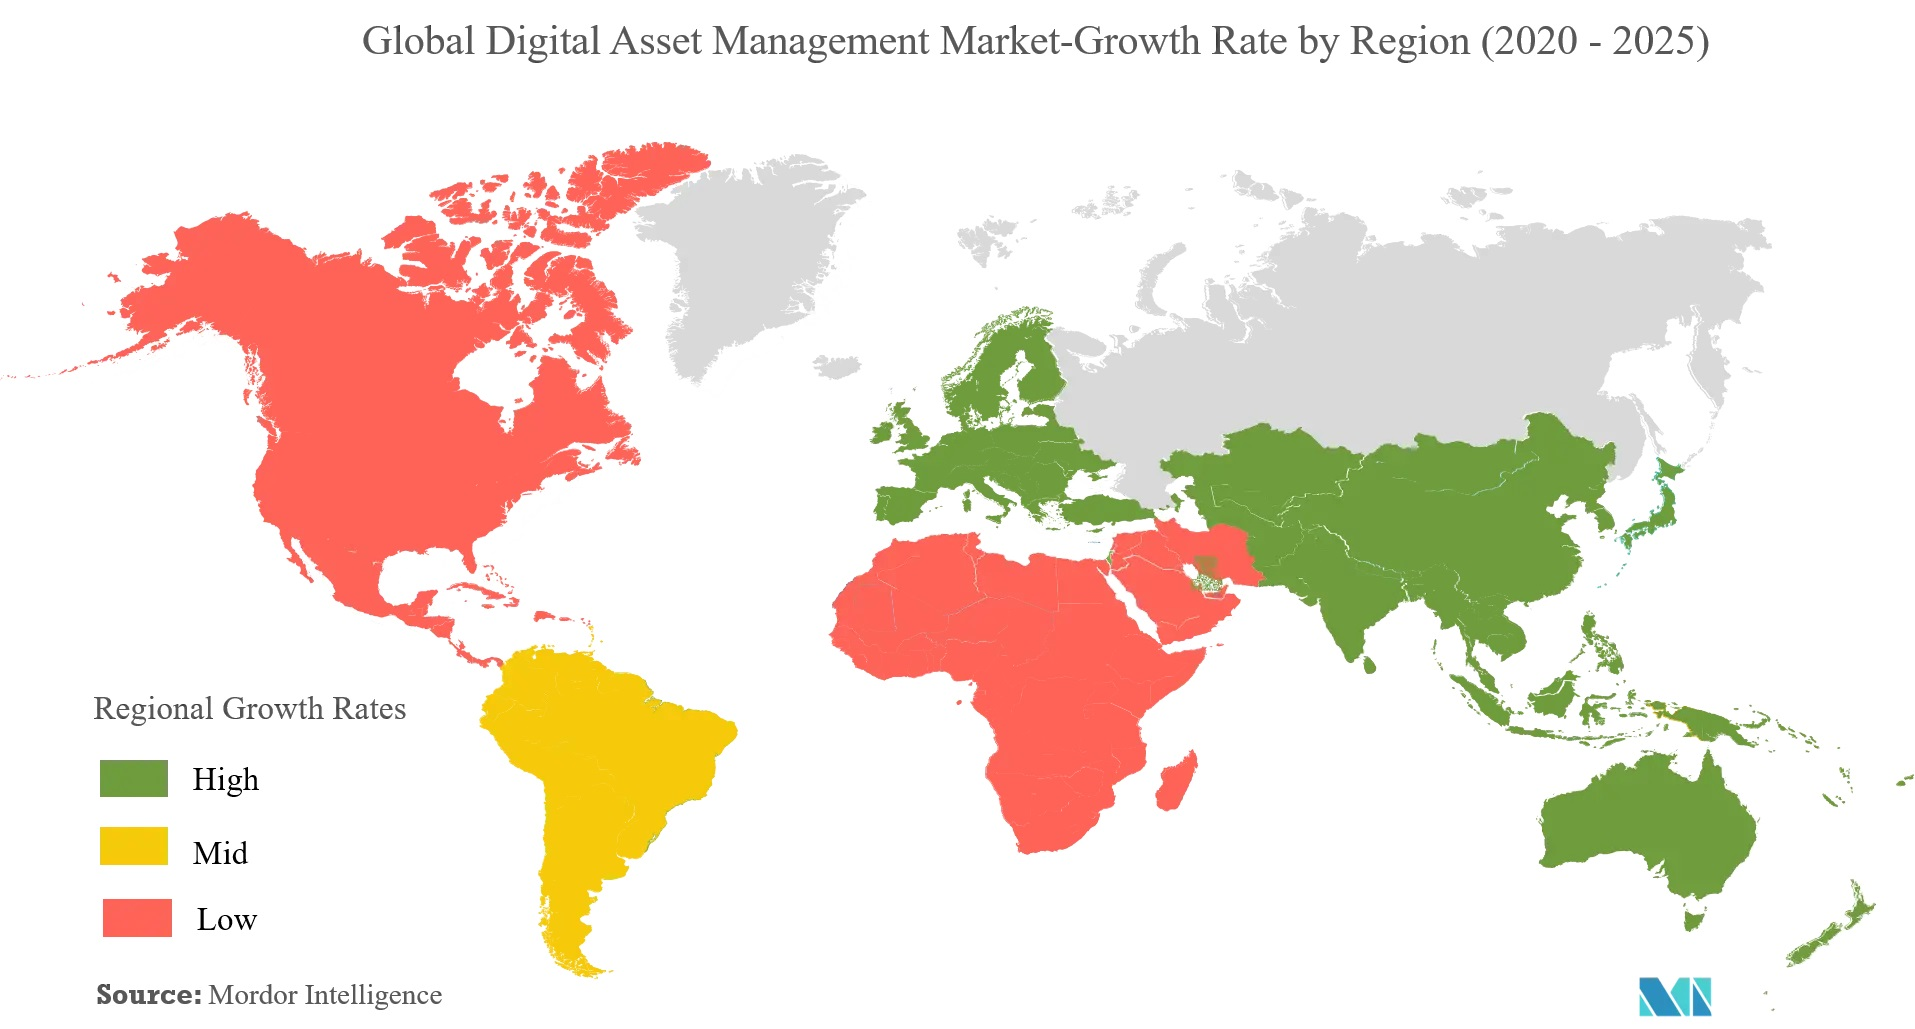 DAM market growth rate